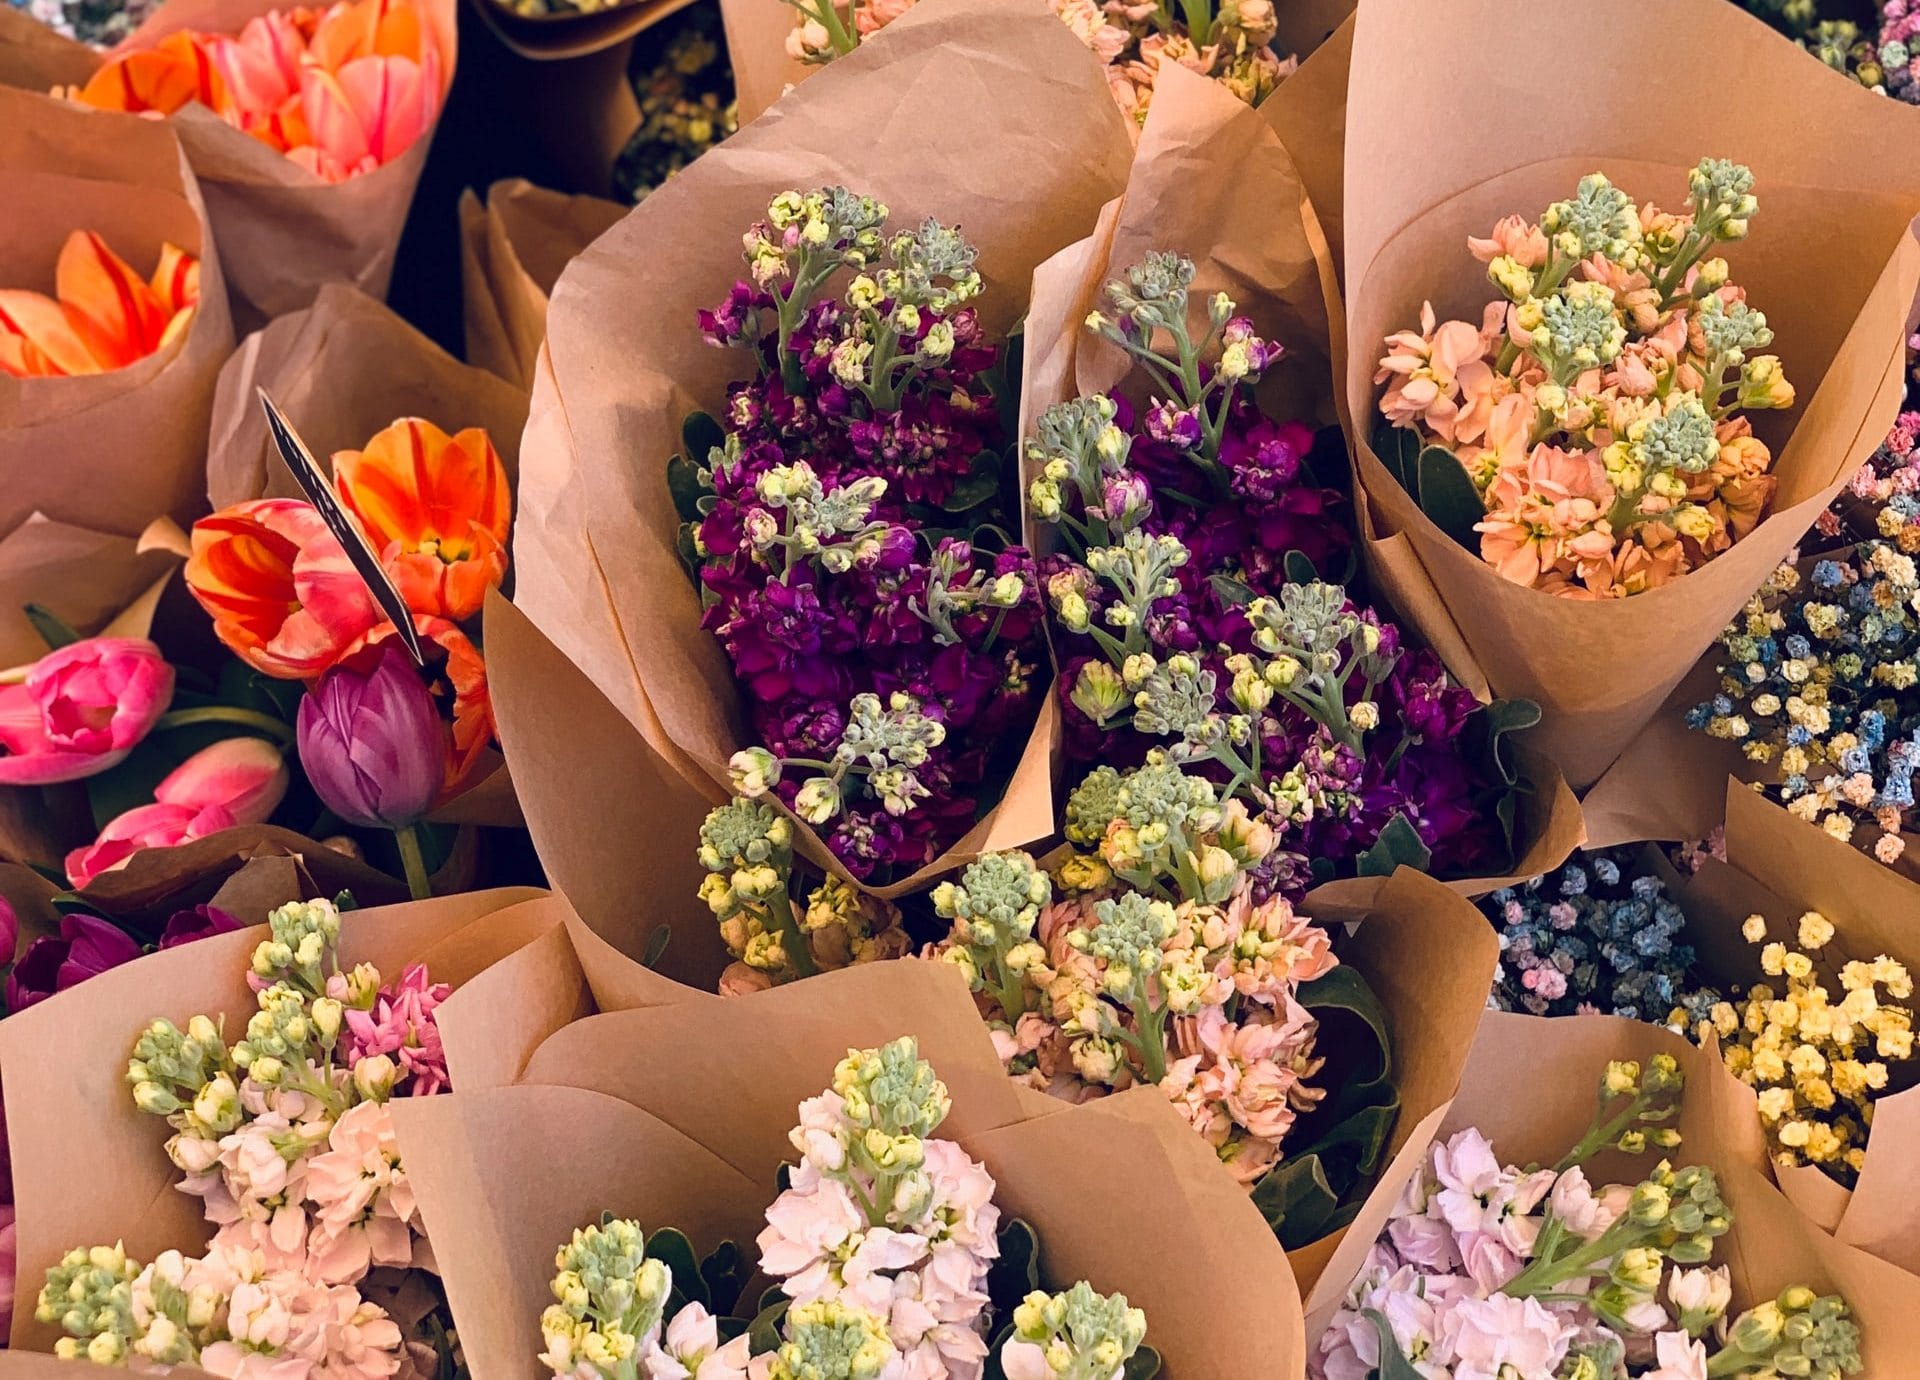 Flower Industry Statistics - Featured Image